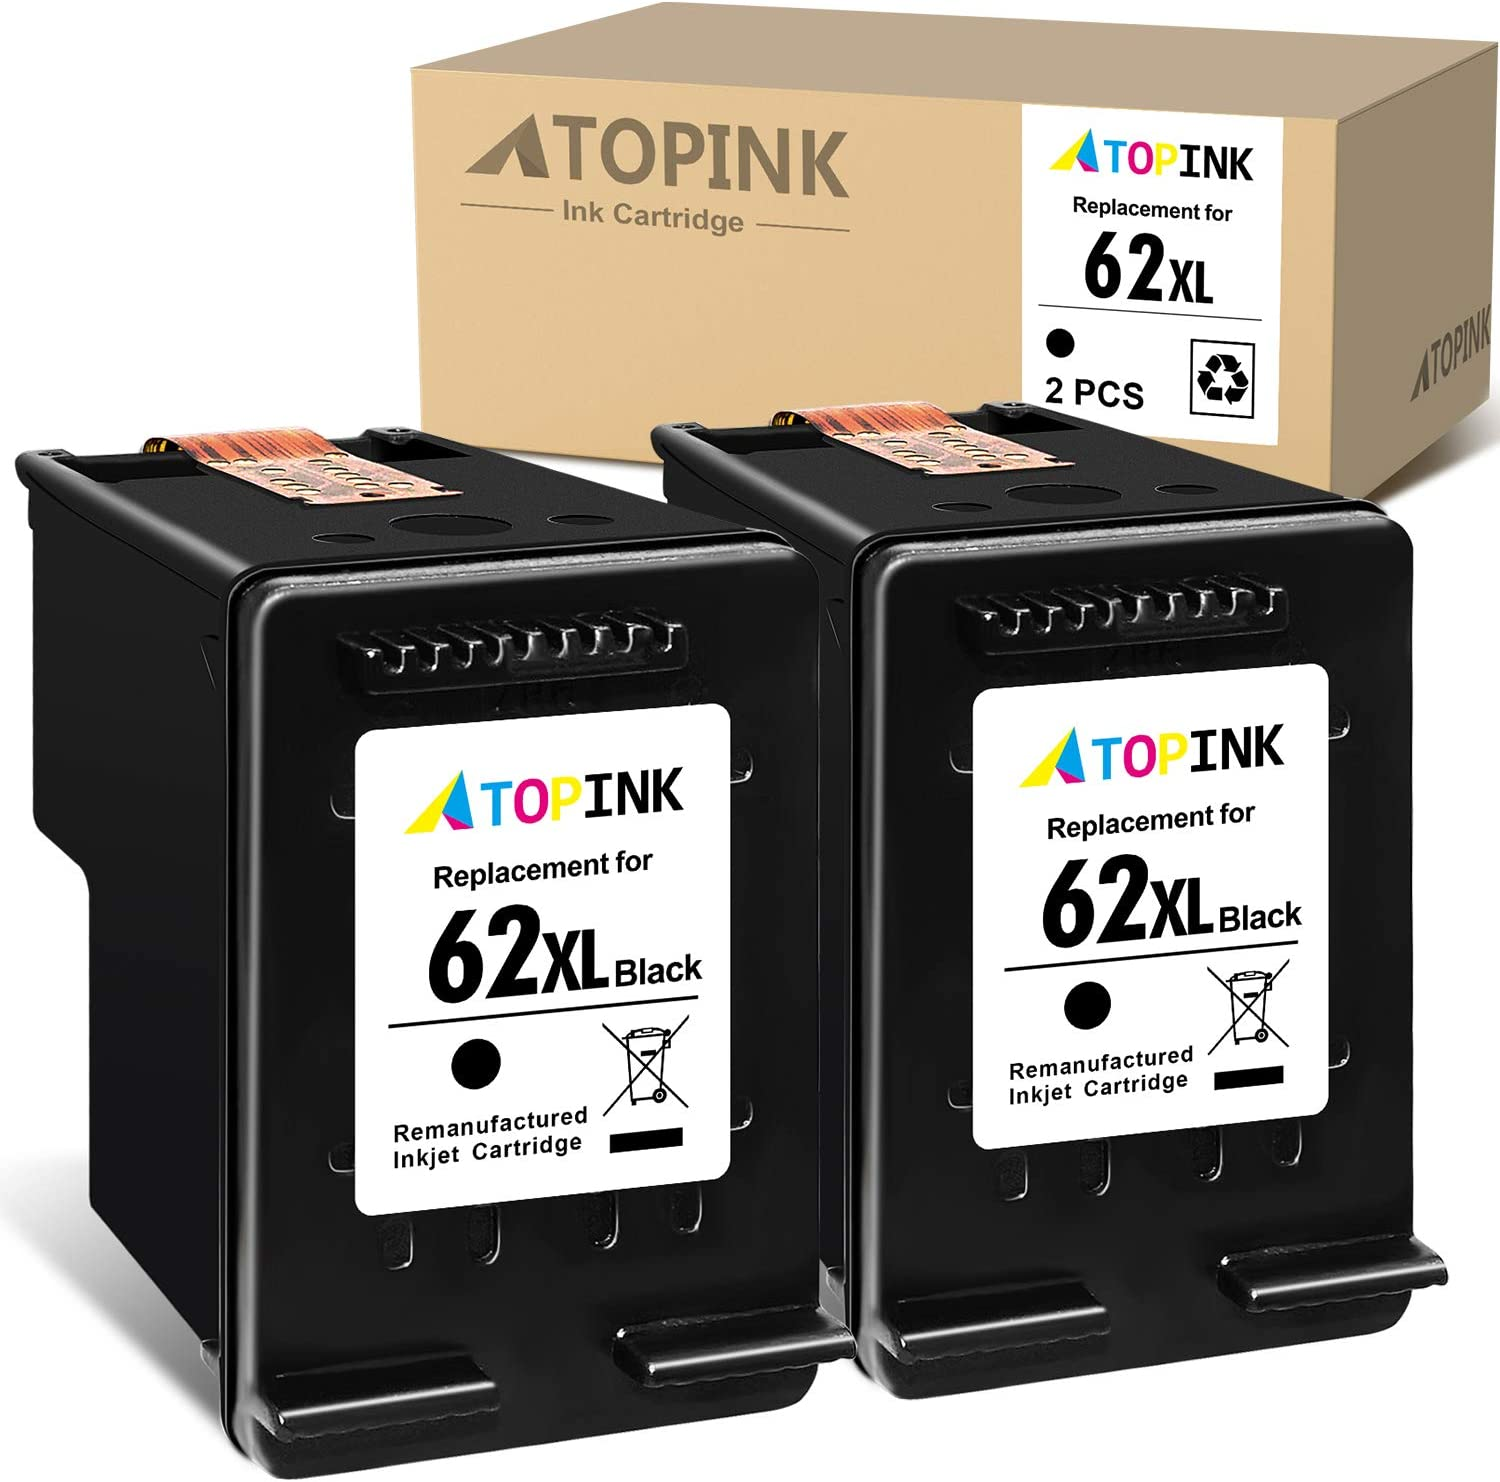 ATOPINK Remanufactured Ink Cartridge Replacement for HP 62XL 62 XL Compatible with OfficeJet 5740 250 200 8040 5745 5744 Envy 5660 5540 5640 7640 5661 5642 5542 5643 5665 5663 5664 7643 (Black) 2-Pack